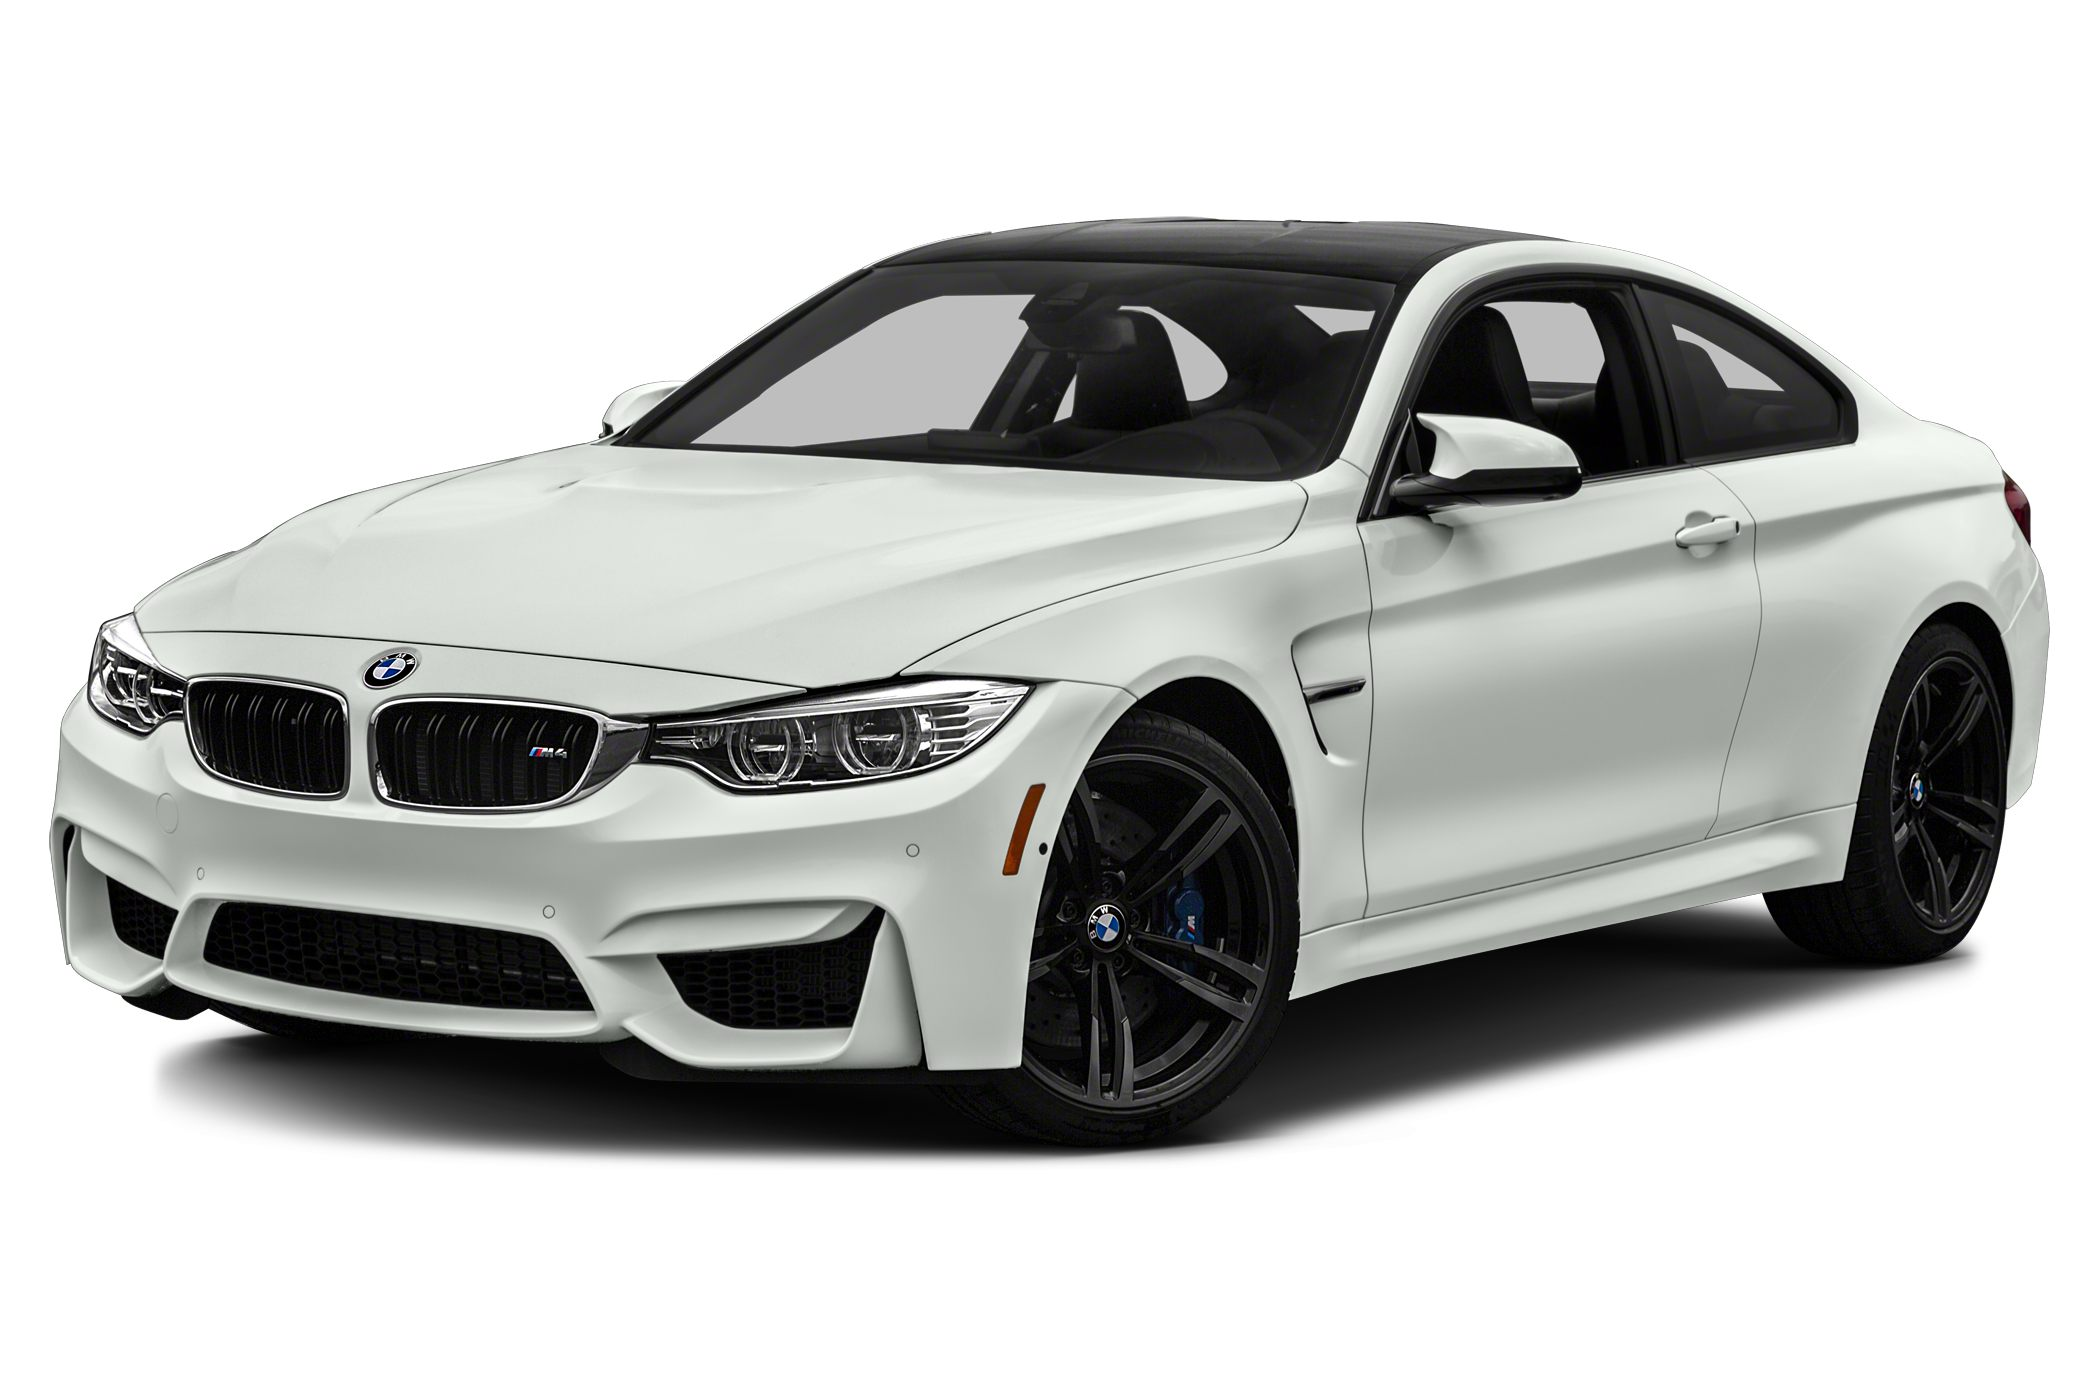 2015 BMW M4 Base Coupe for sale in Miami for $75,175 with 5 miles.